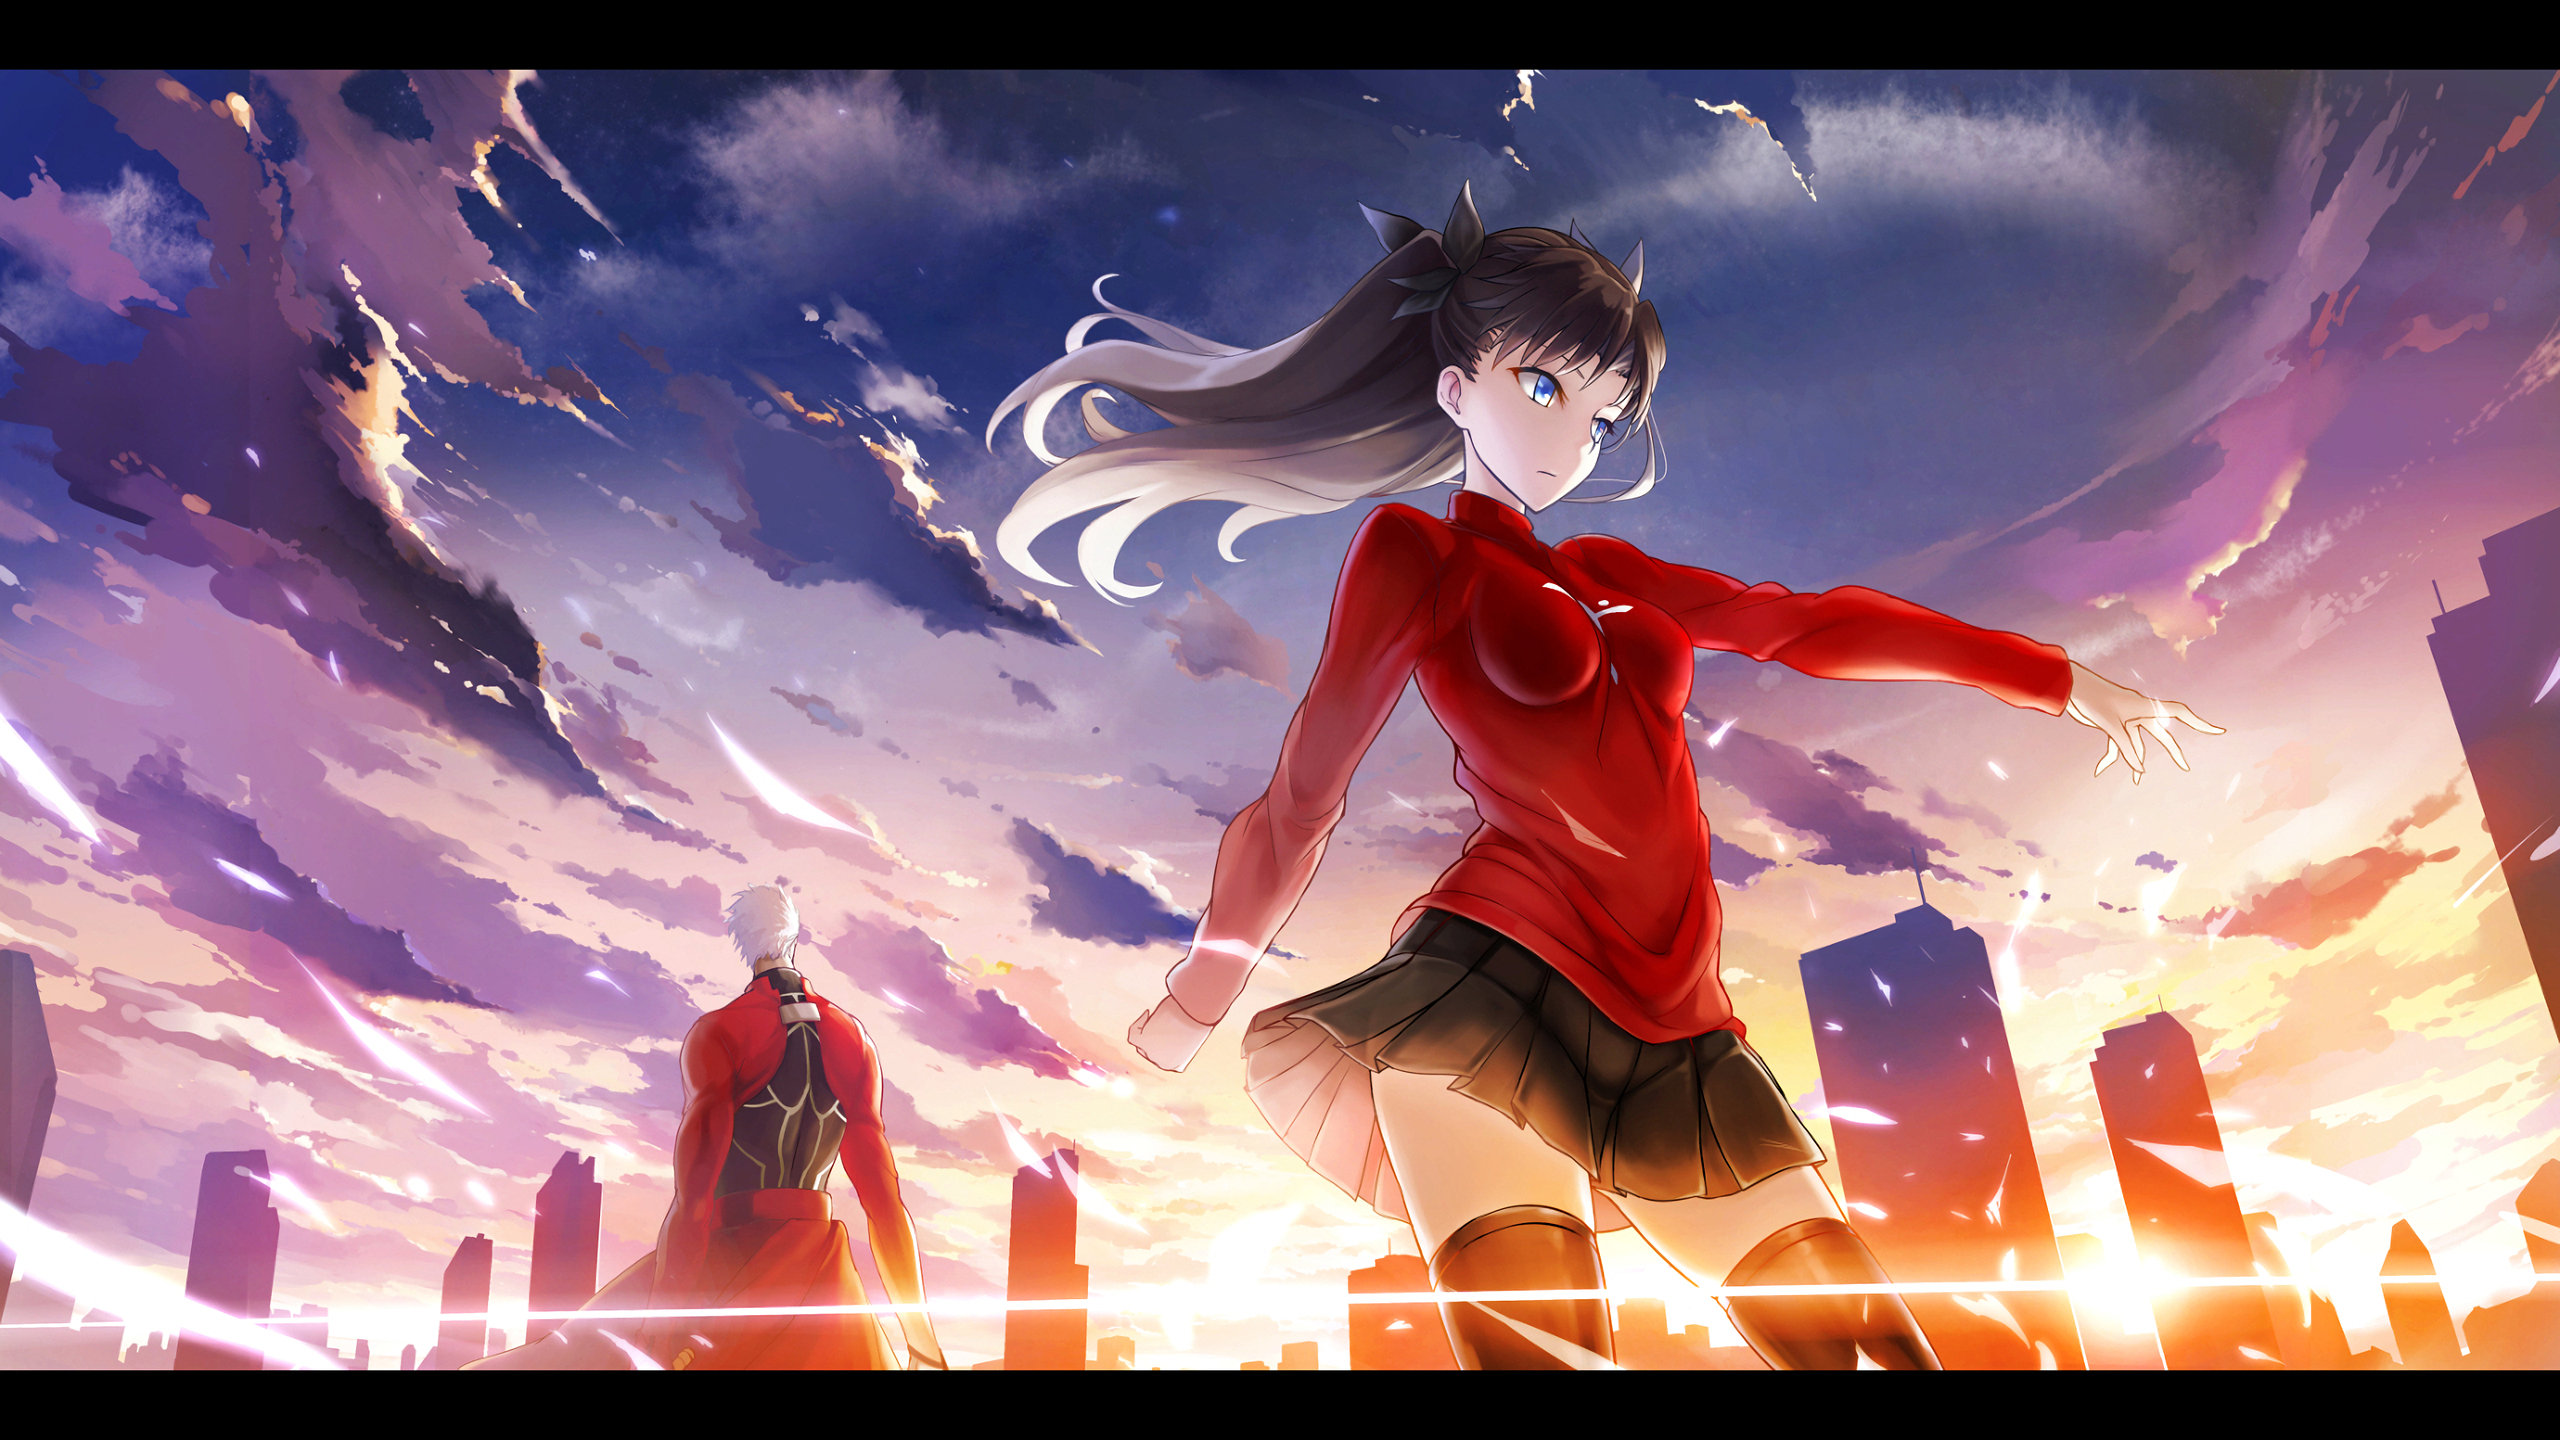 Free download Fate/Stay Night wallpaper ID:468495 hd 2560x1440 for computer